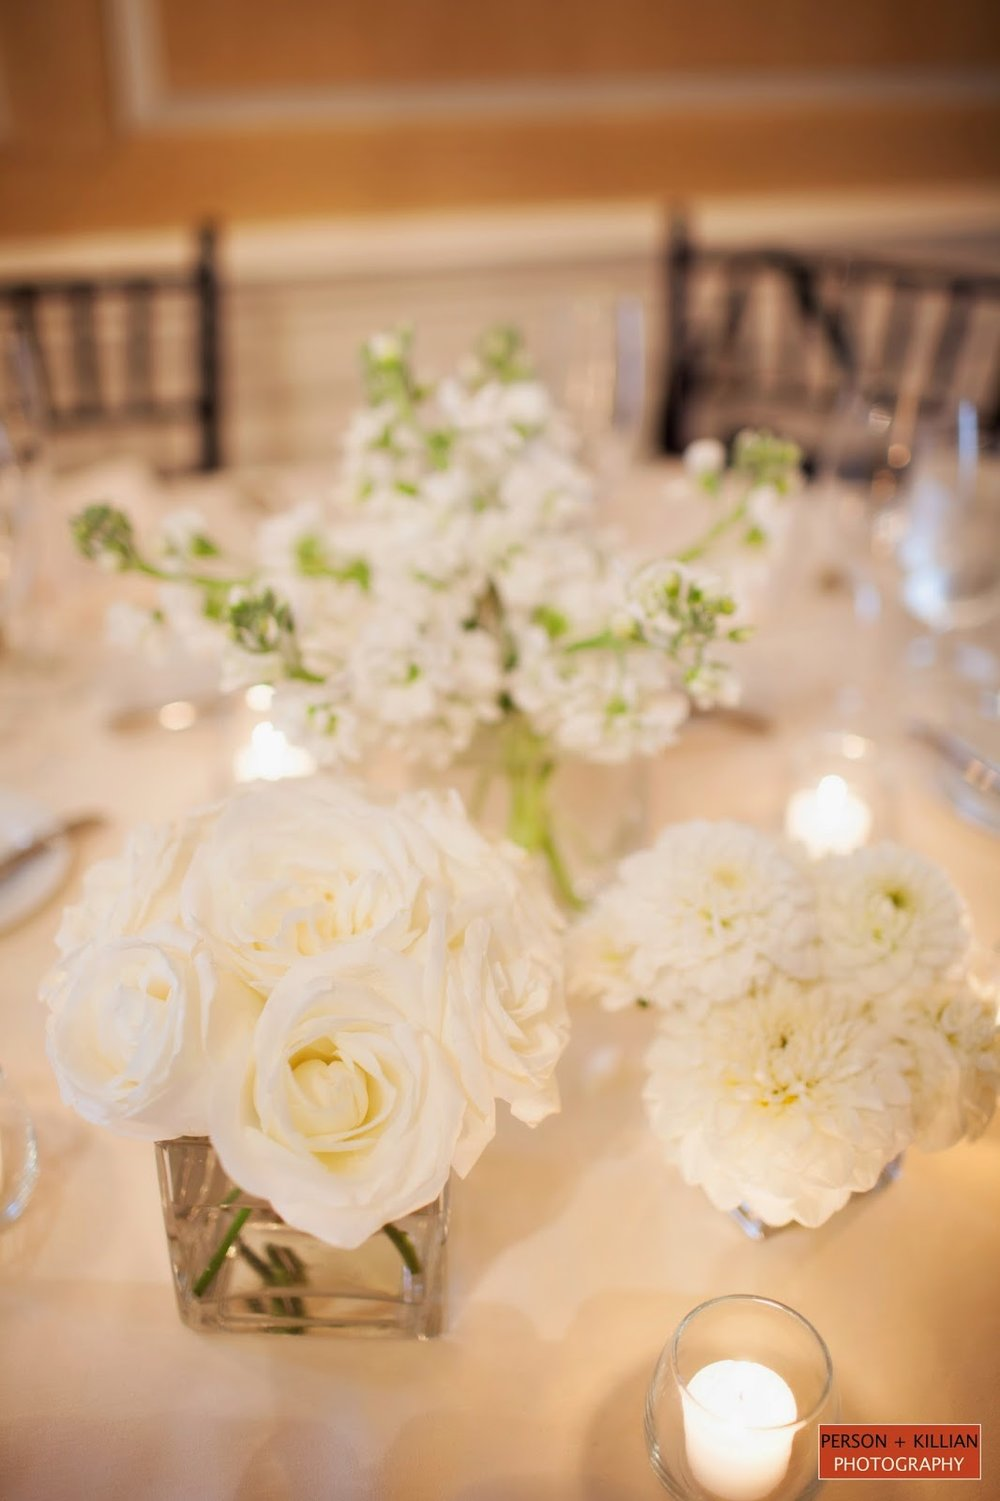 les fleurs : crane estate great house : person + killian photography : simple white centerpieces : square vases, white rose, white stock, white dahlia